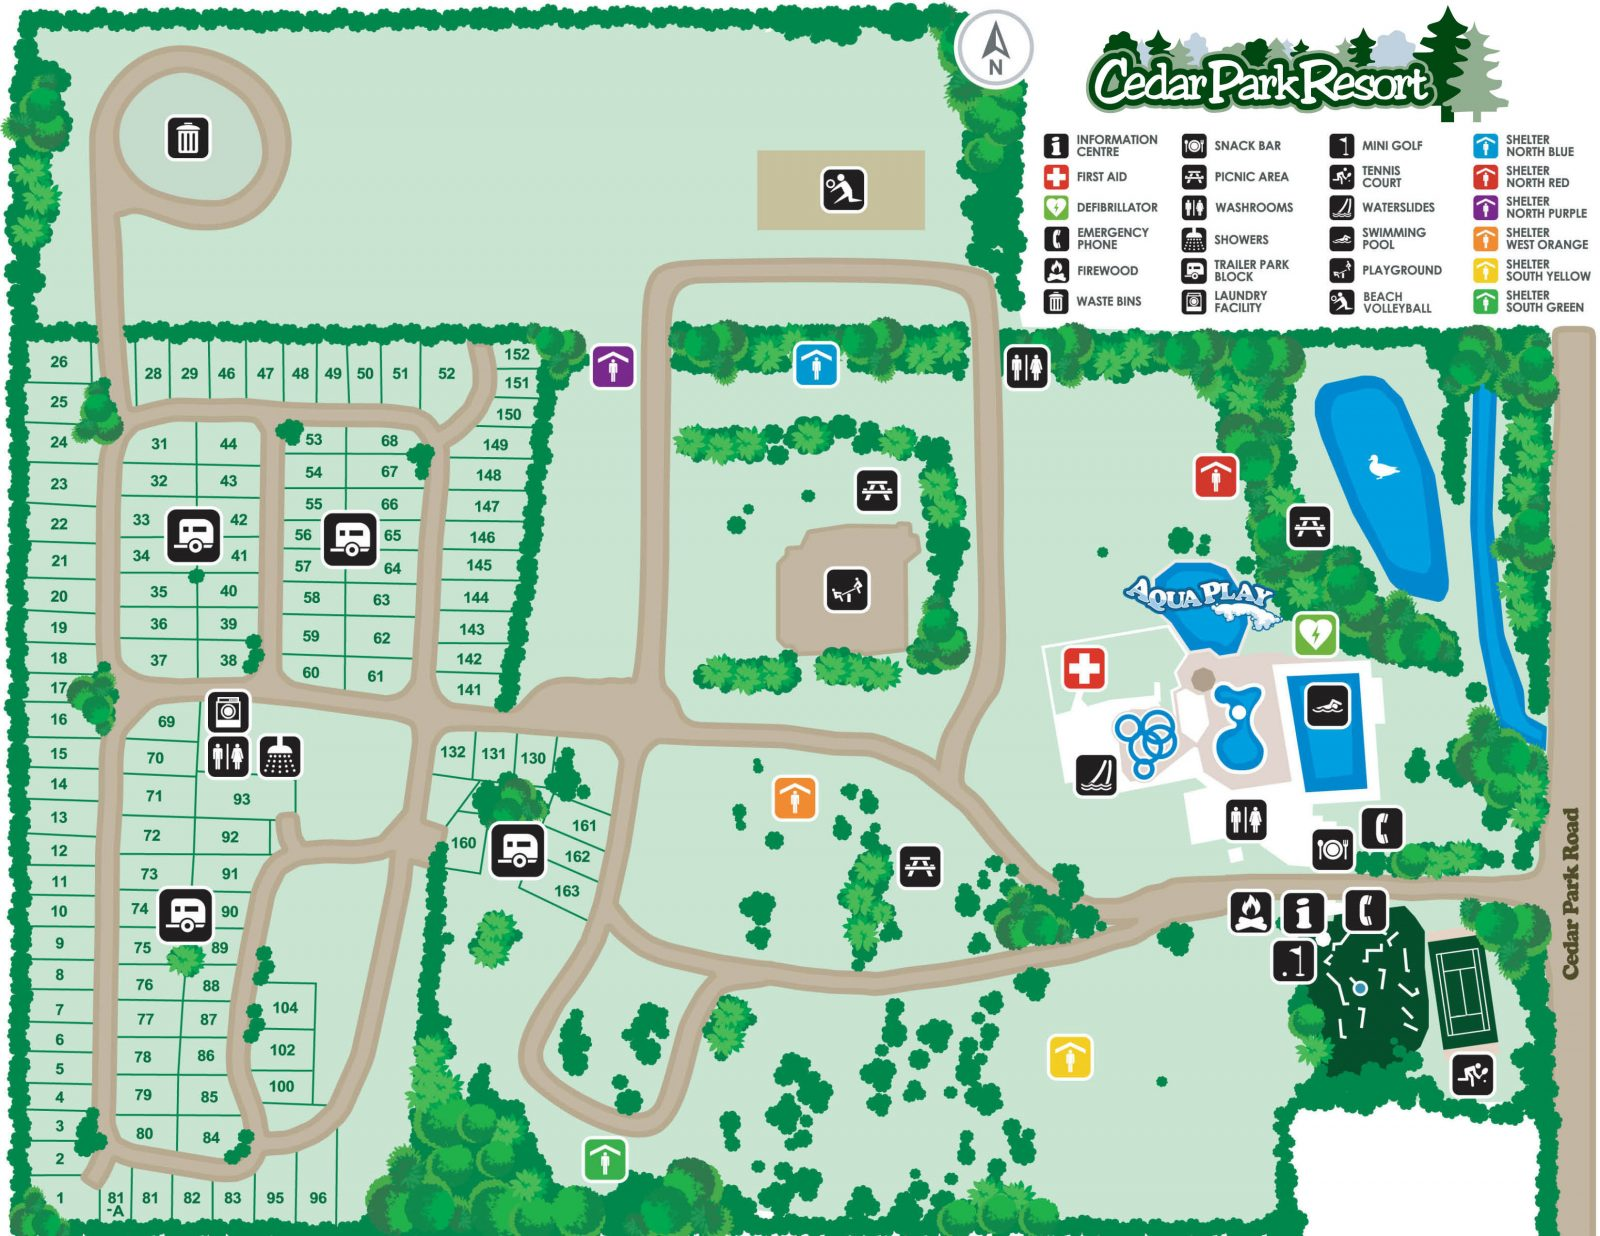 Park Map - Cedar Park Resort